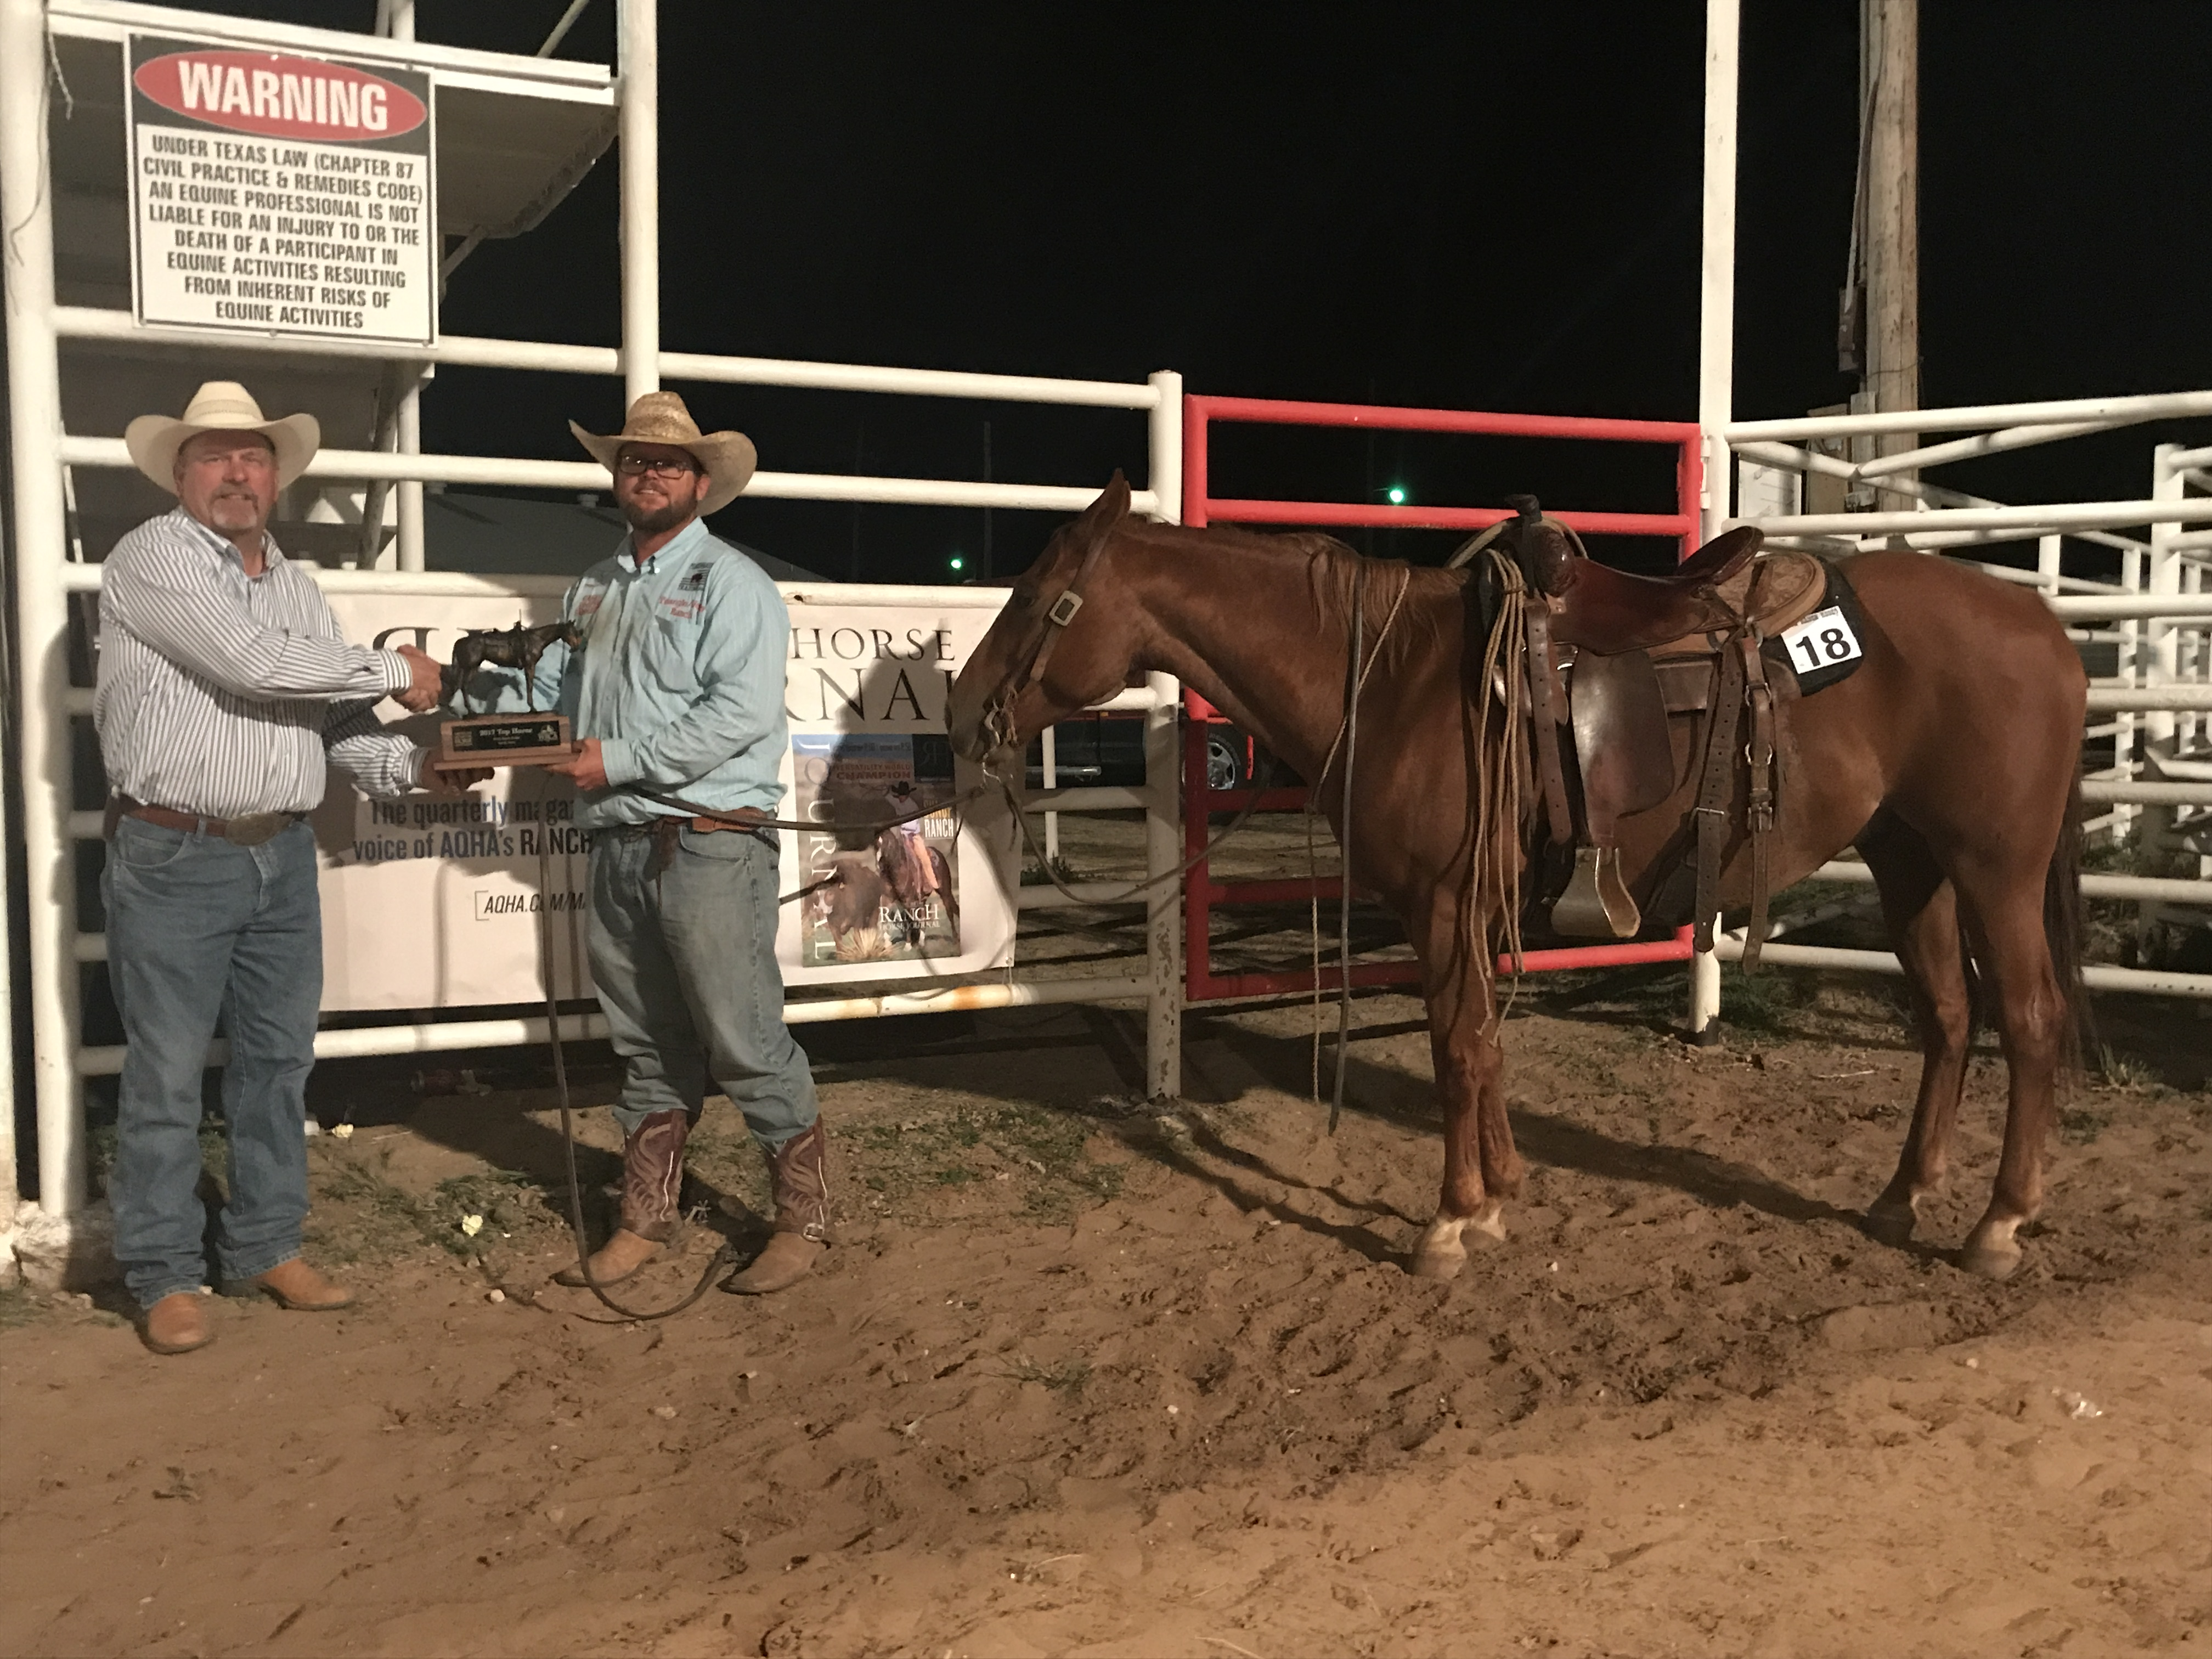 2017 Earth Ranch Rodeo Top Horse: CSR Pepto Stormy. Ridden By: JB Miller, Veale Ranch / Triangle Ranch. Owned by: JB Miller